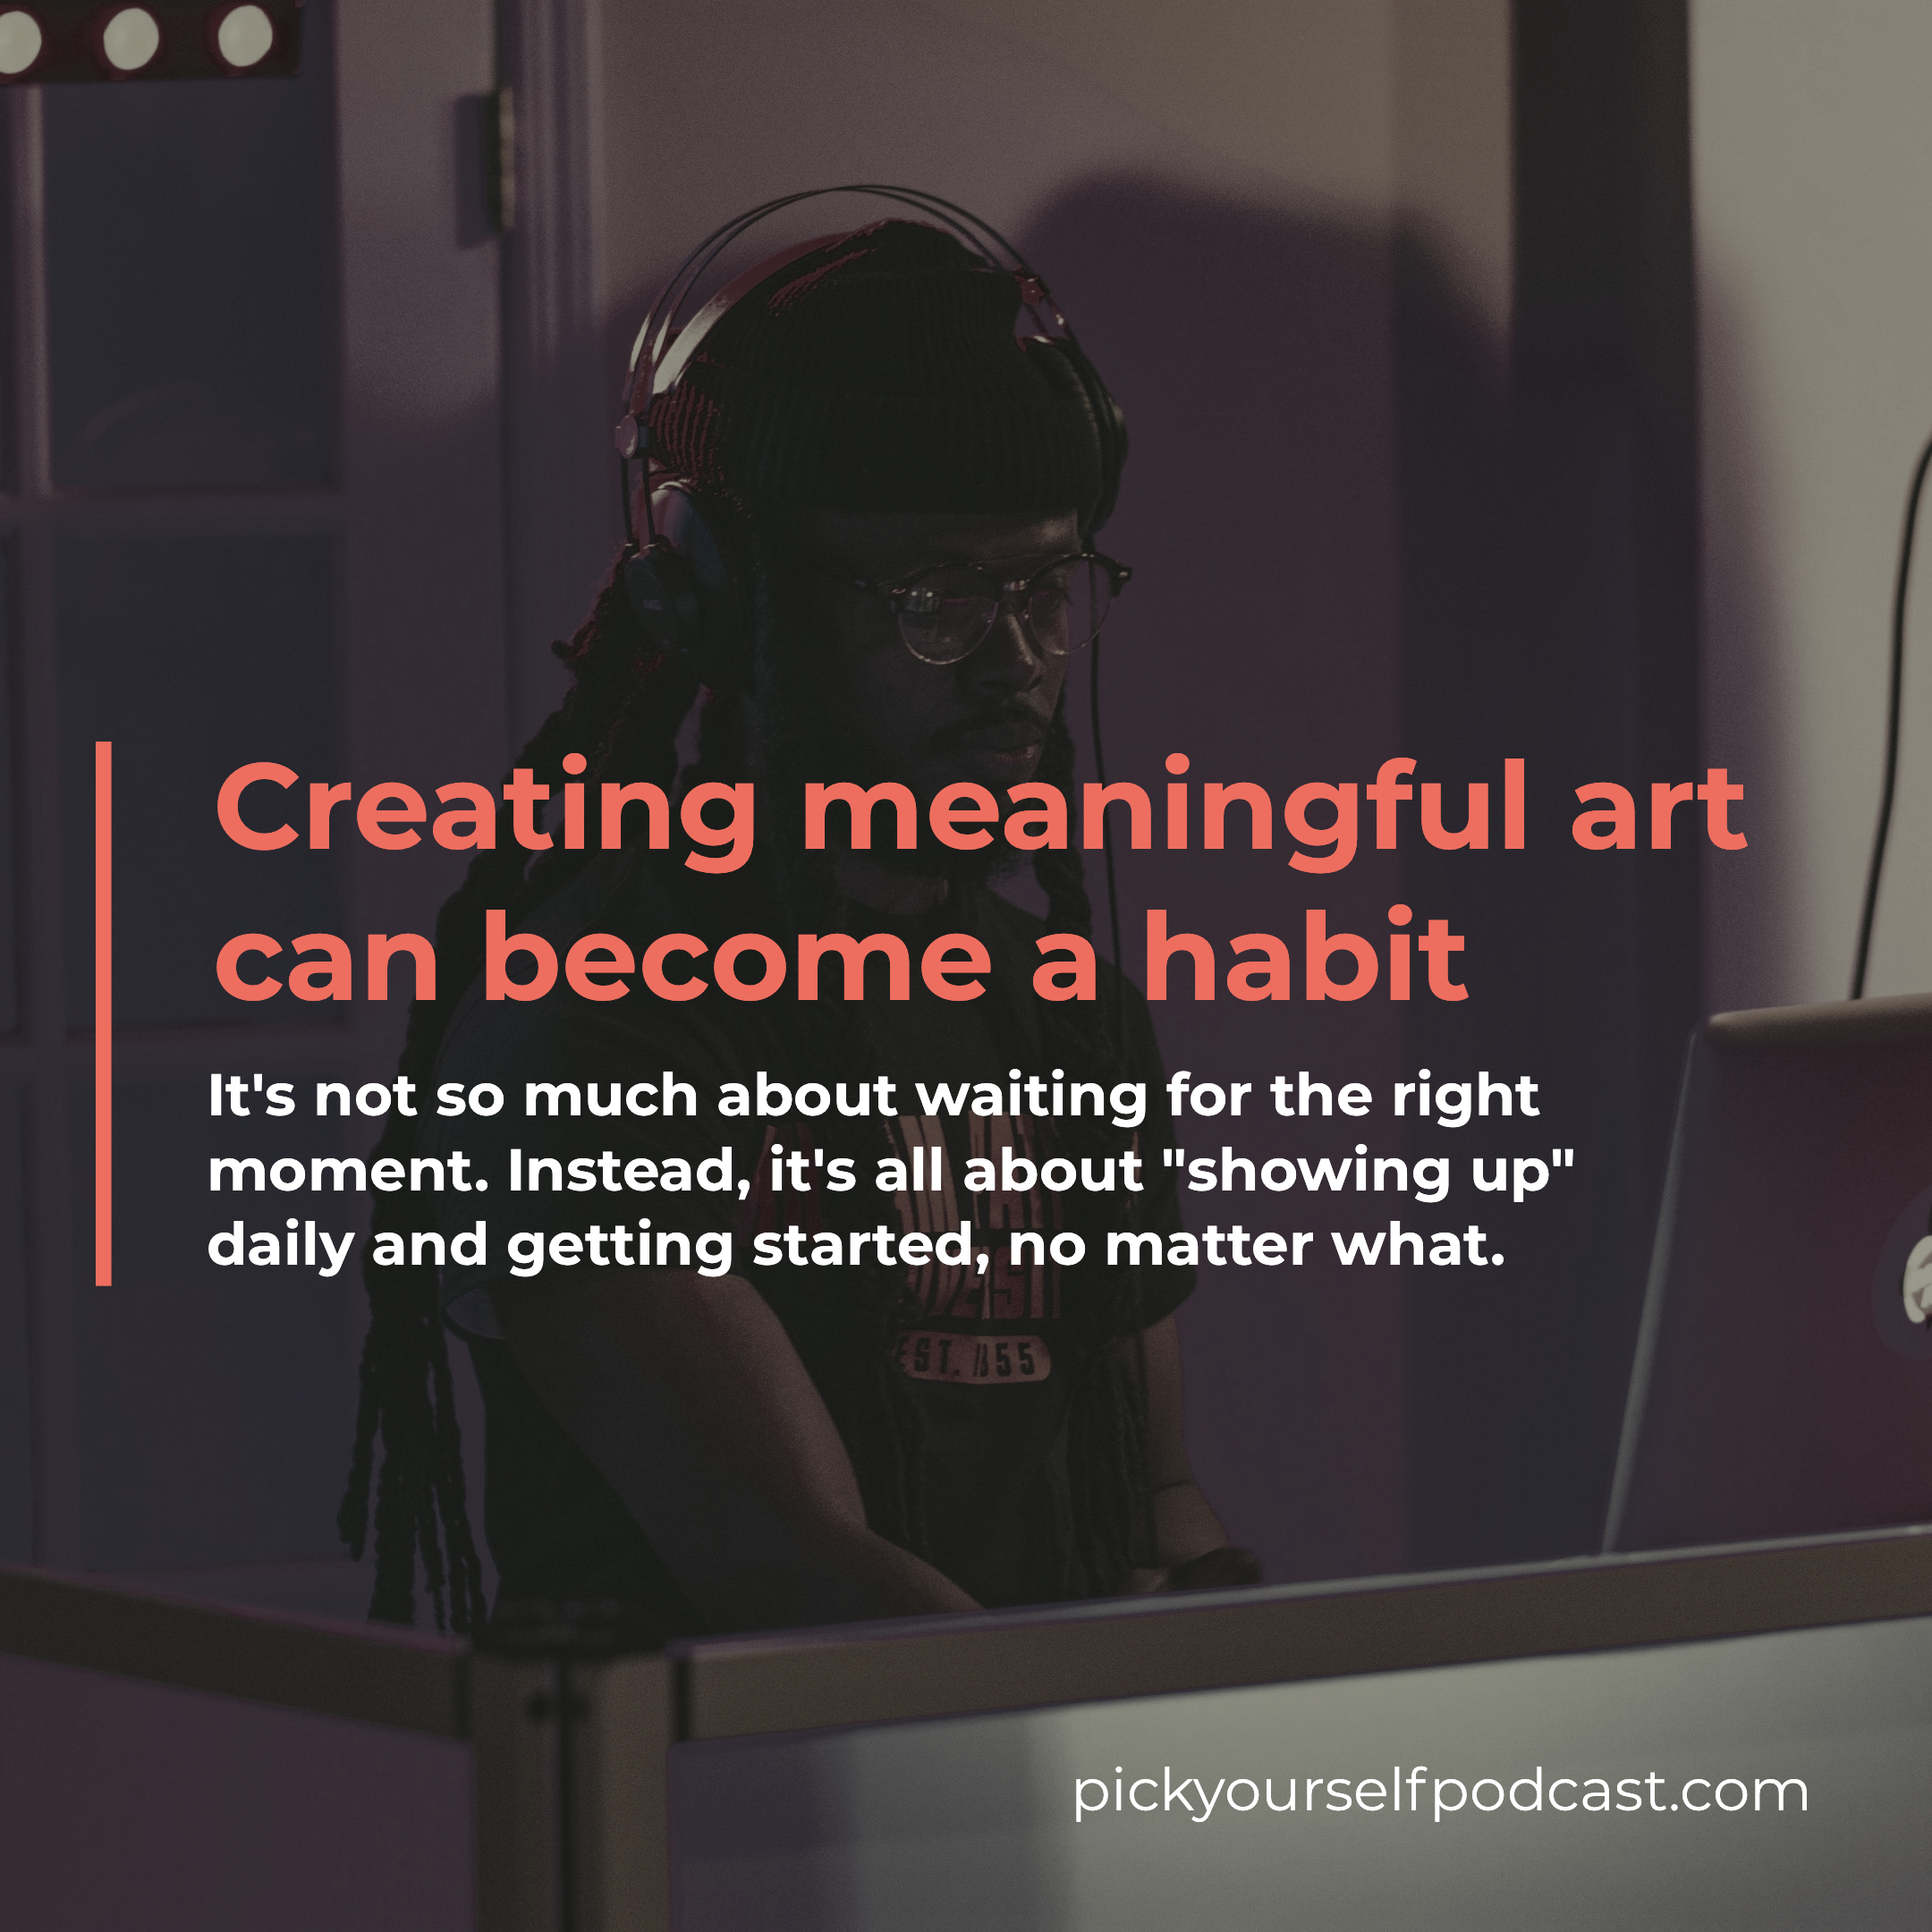 Creating meaningful art can become a habit. It's about showing up daily and getting started, no matter what.